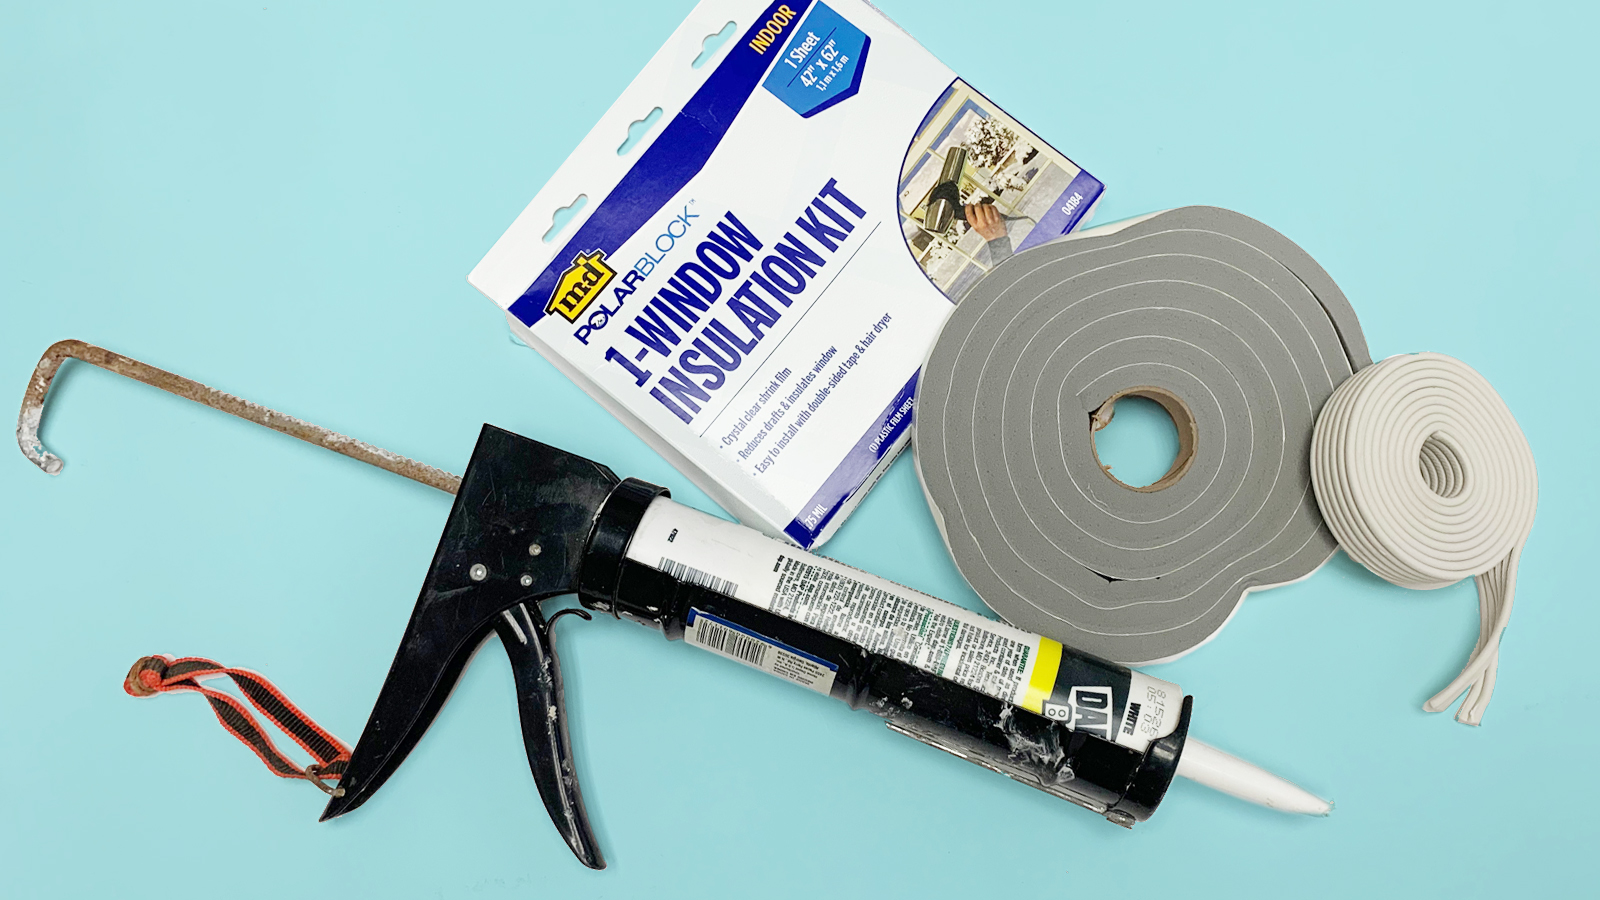 shrink-wrap kit, caulk gun, and weatherstipping all used to winterize windows